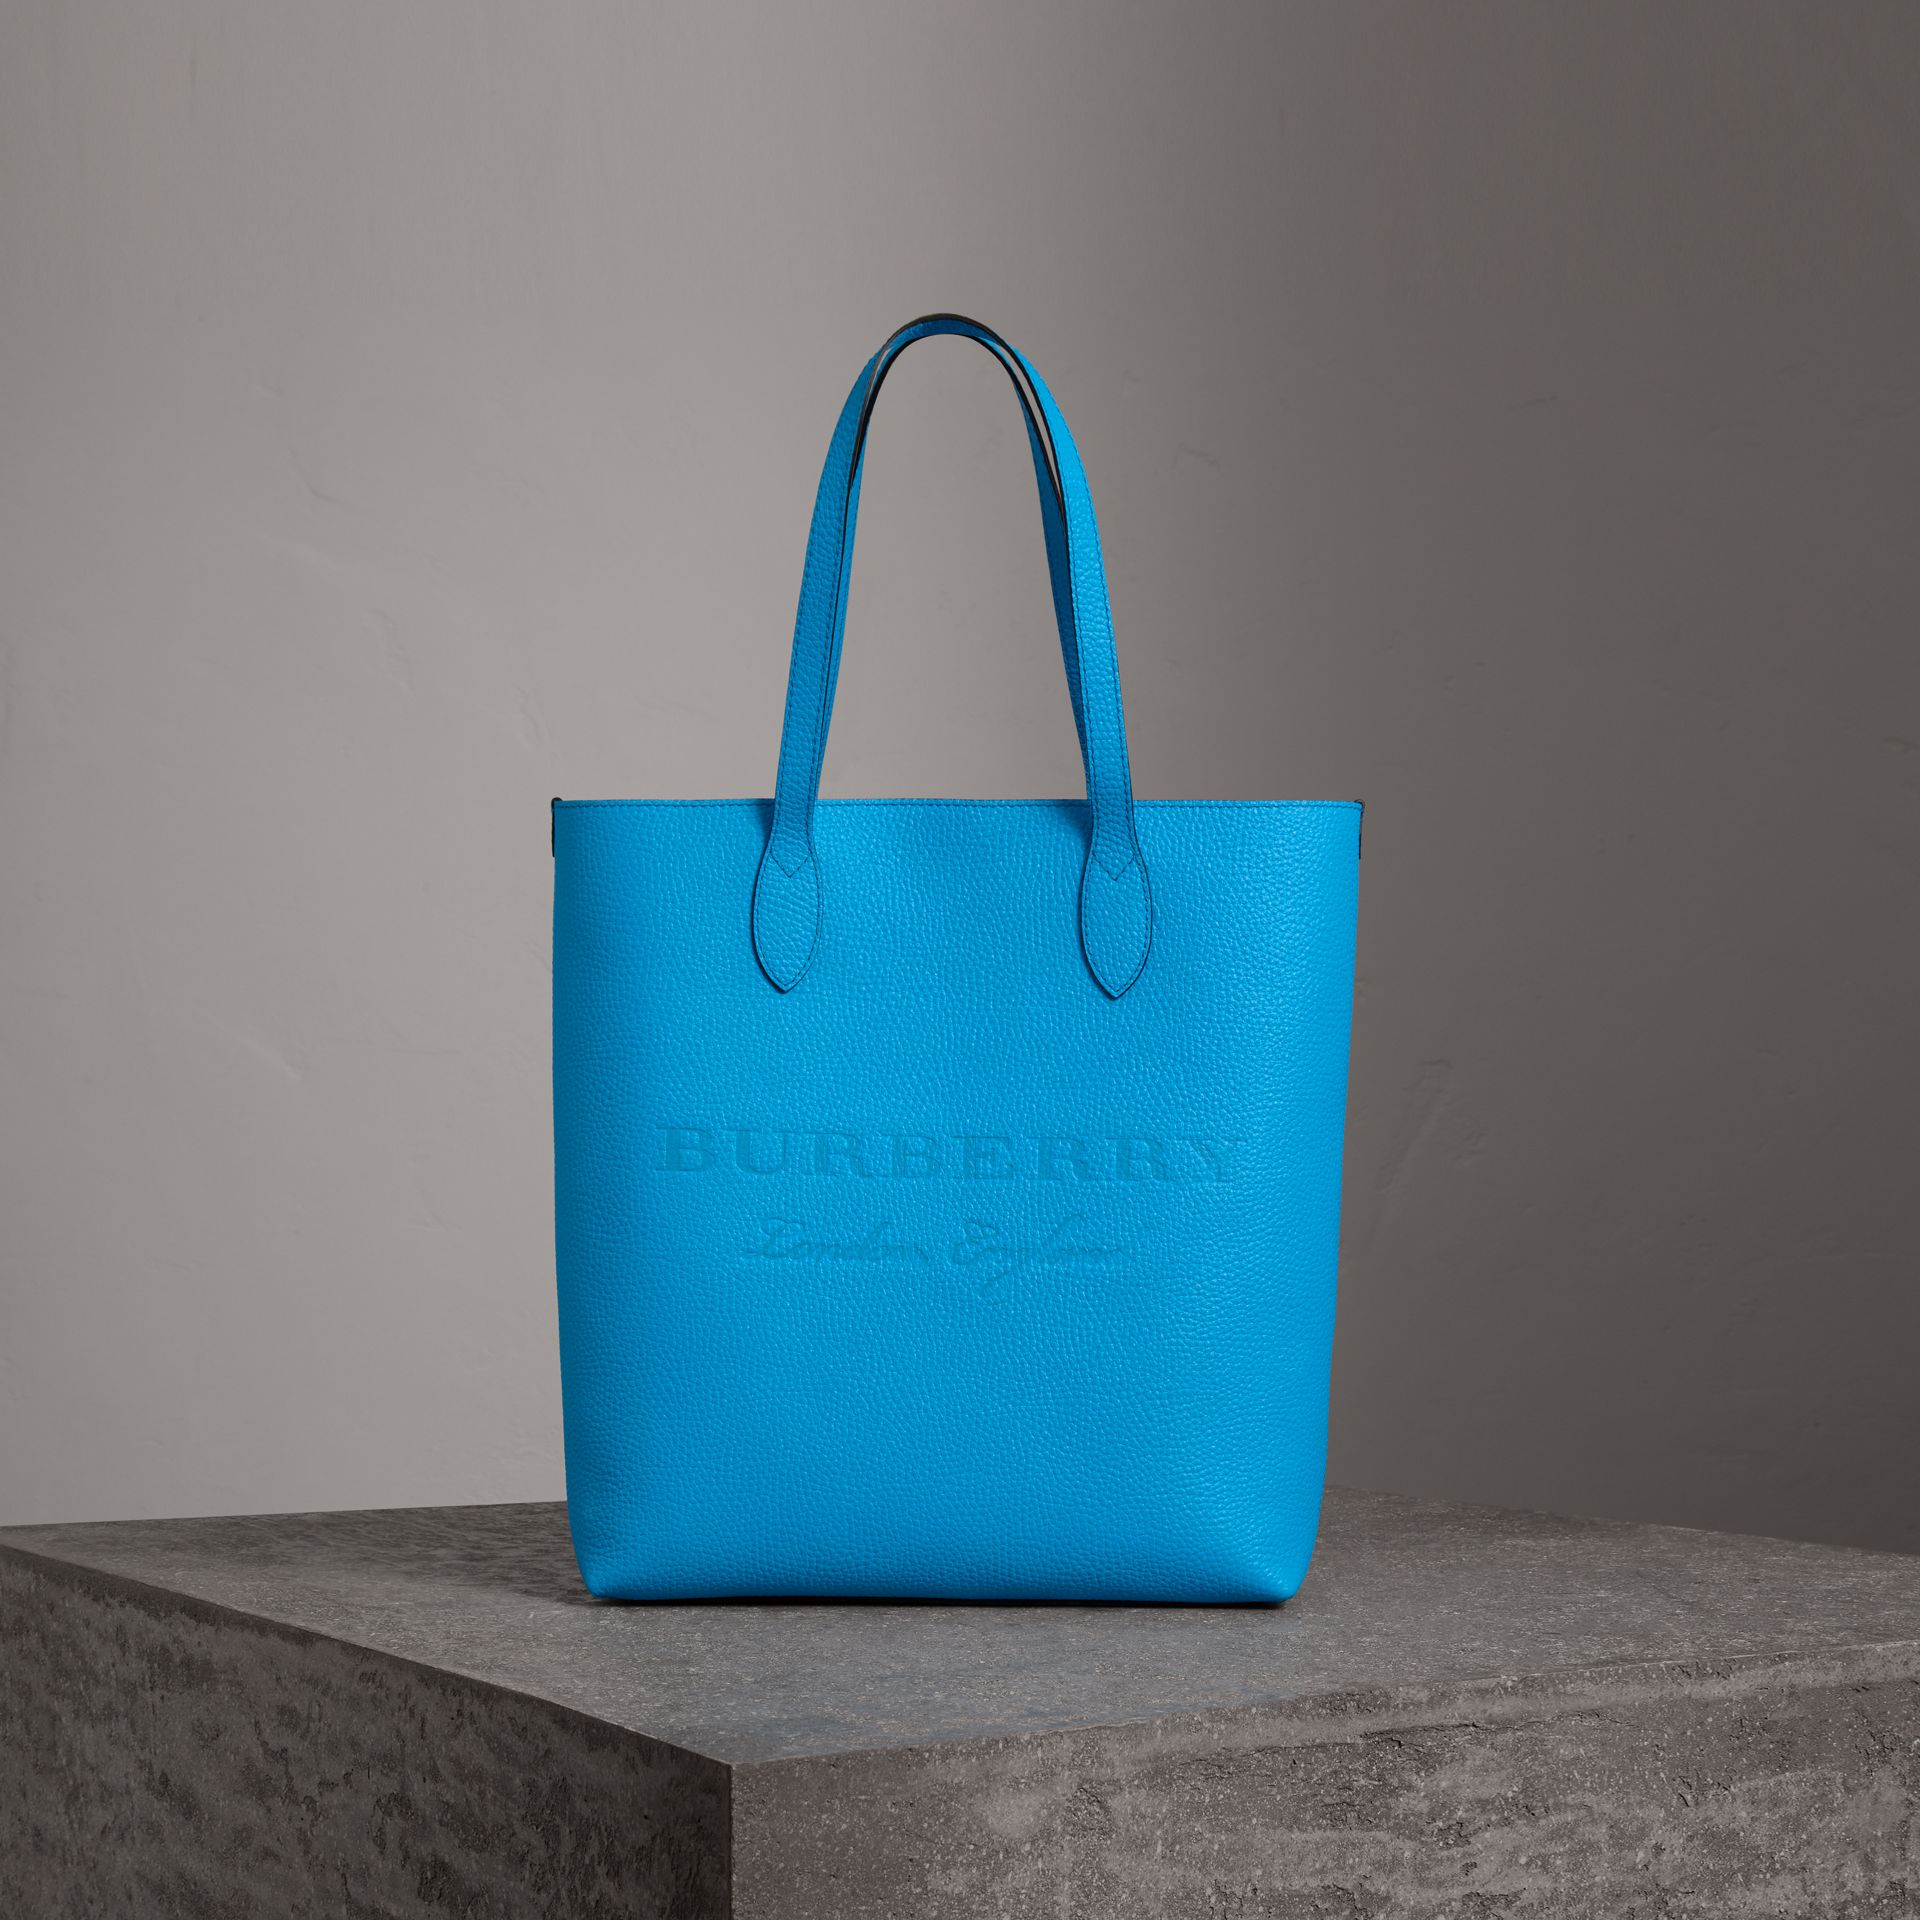 Sac tote en cuir estampé (Bleu Néon) | Burberry - photo de la galerie 0